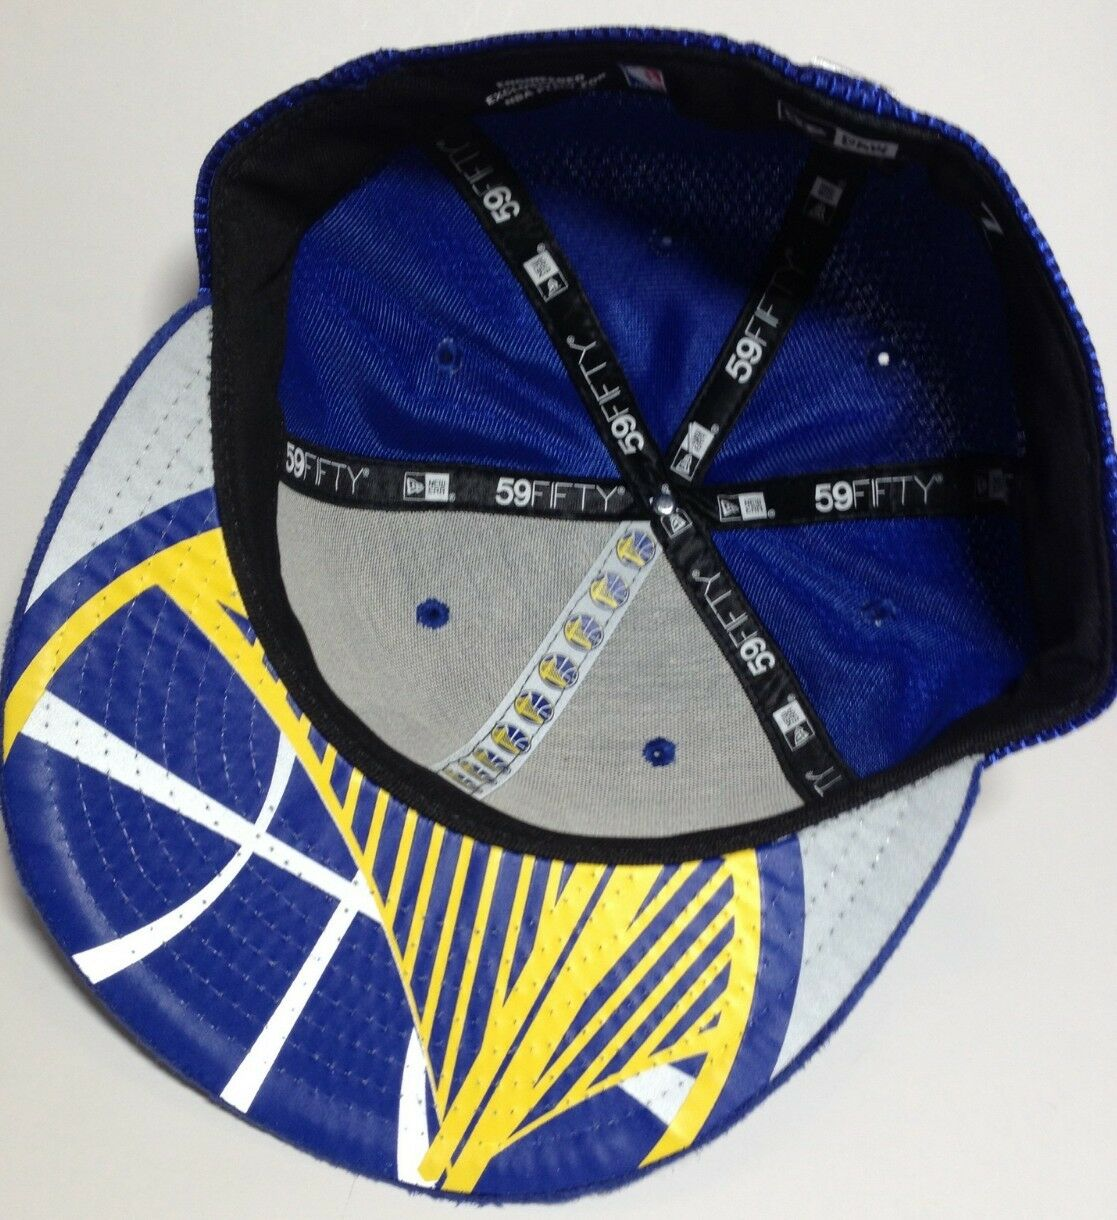 Golden State 59Fifty Warriors NBA New Era 59Fifty State fitted/hat/cap bd6db0